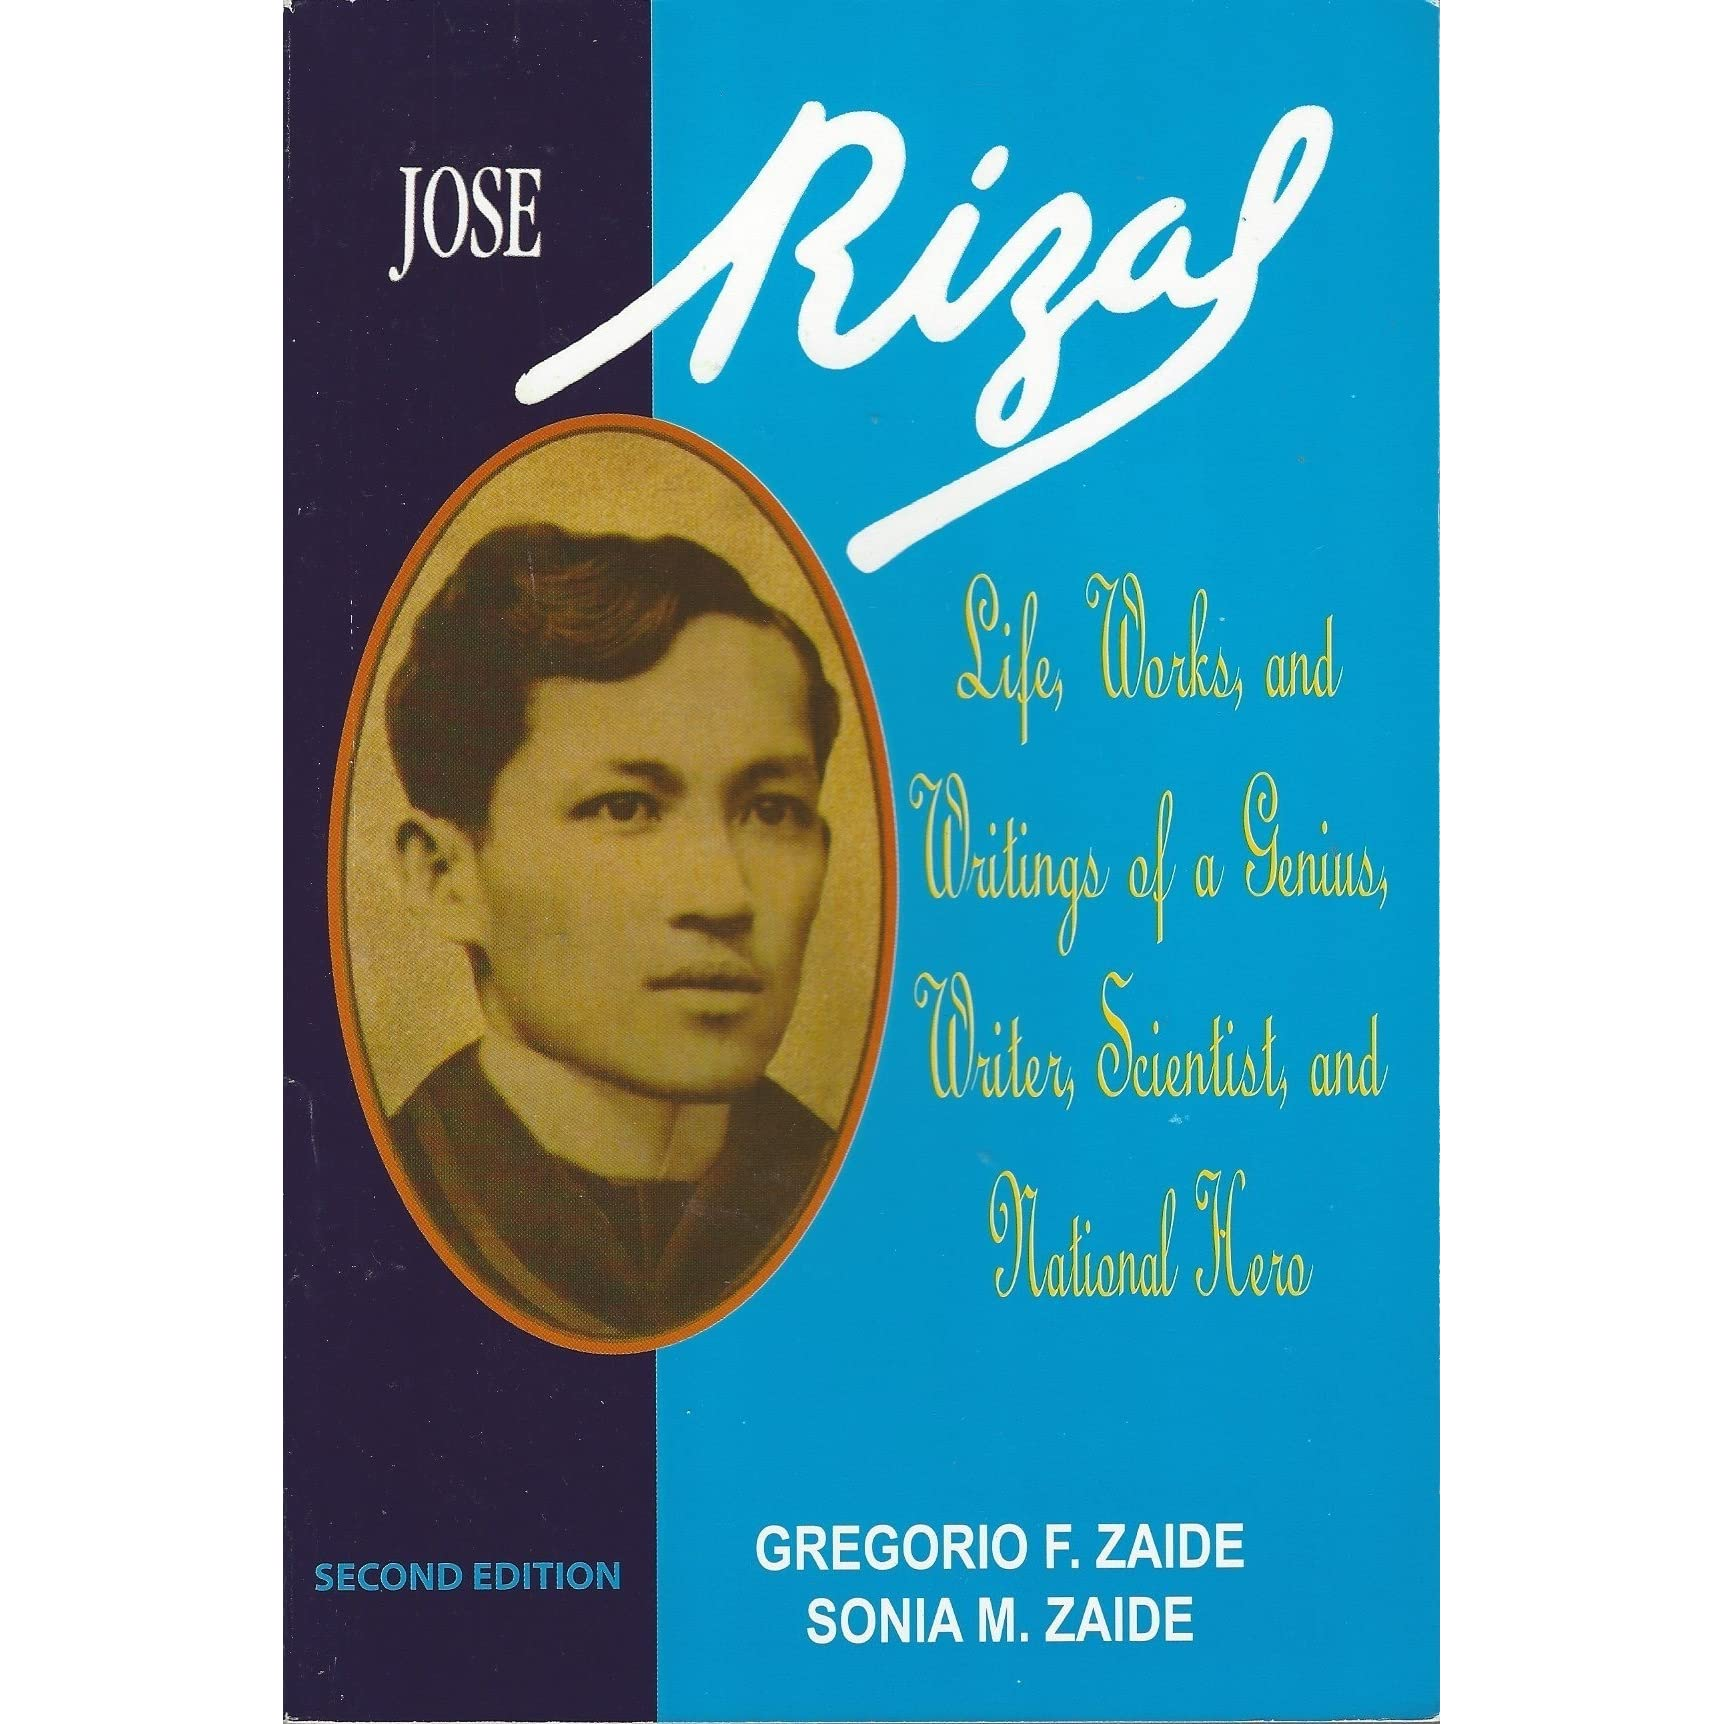 Jose Rizal Life Works And Writings By Gregorio Zaide Pdf